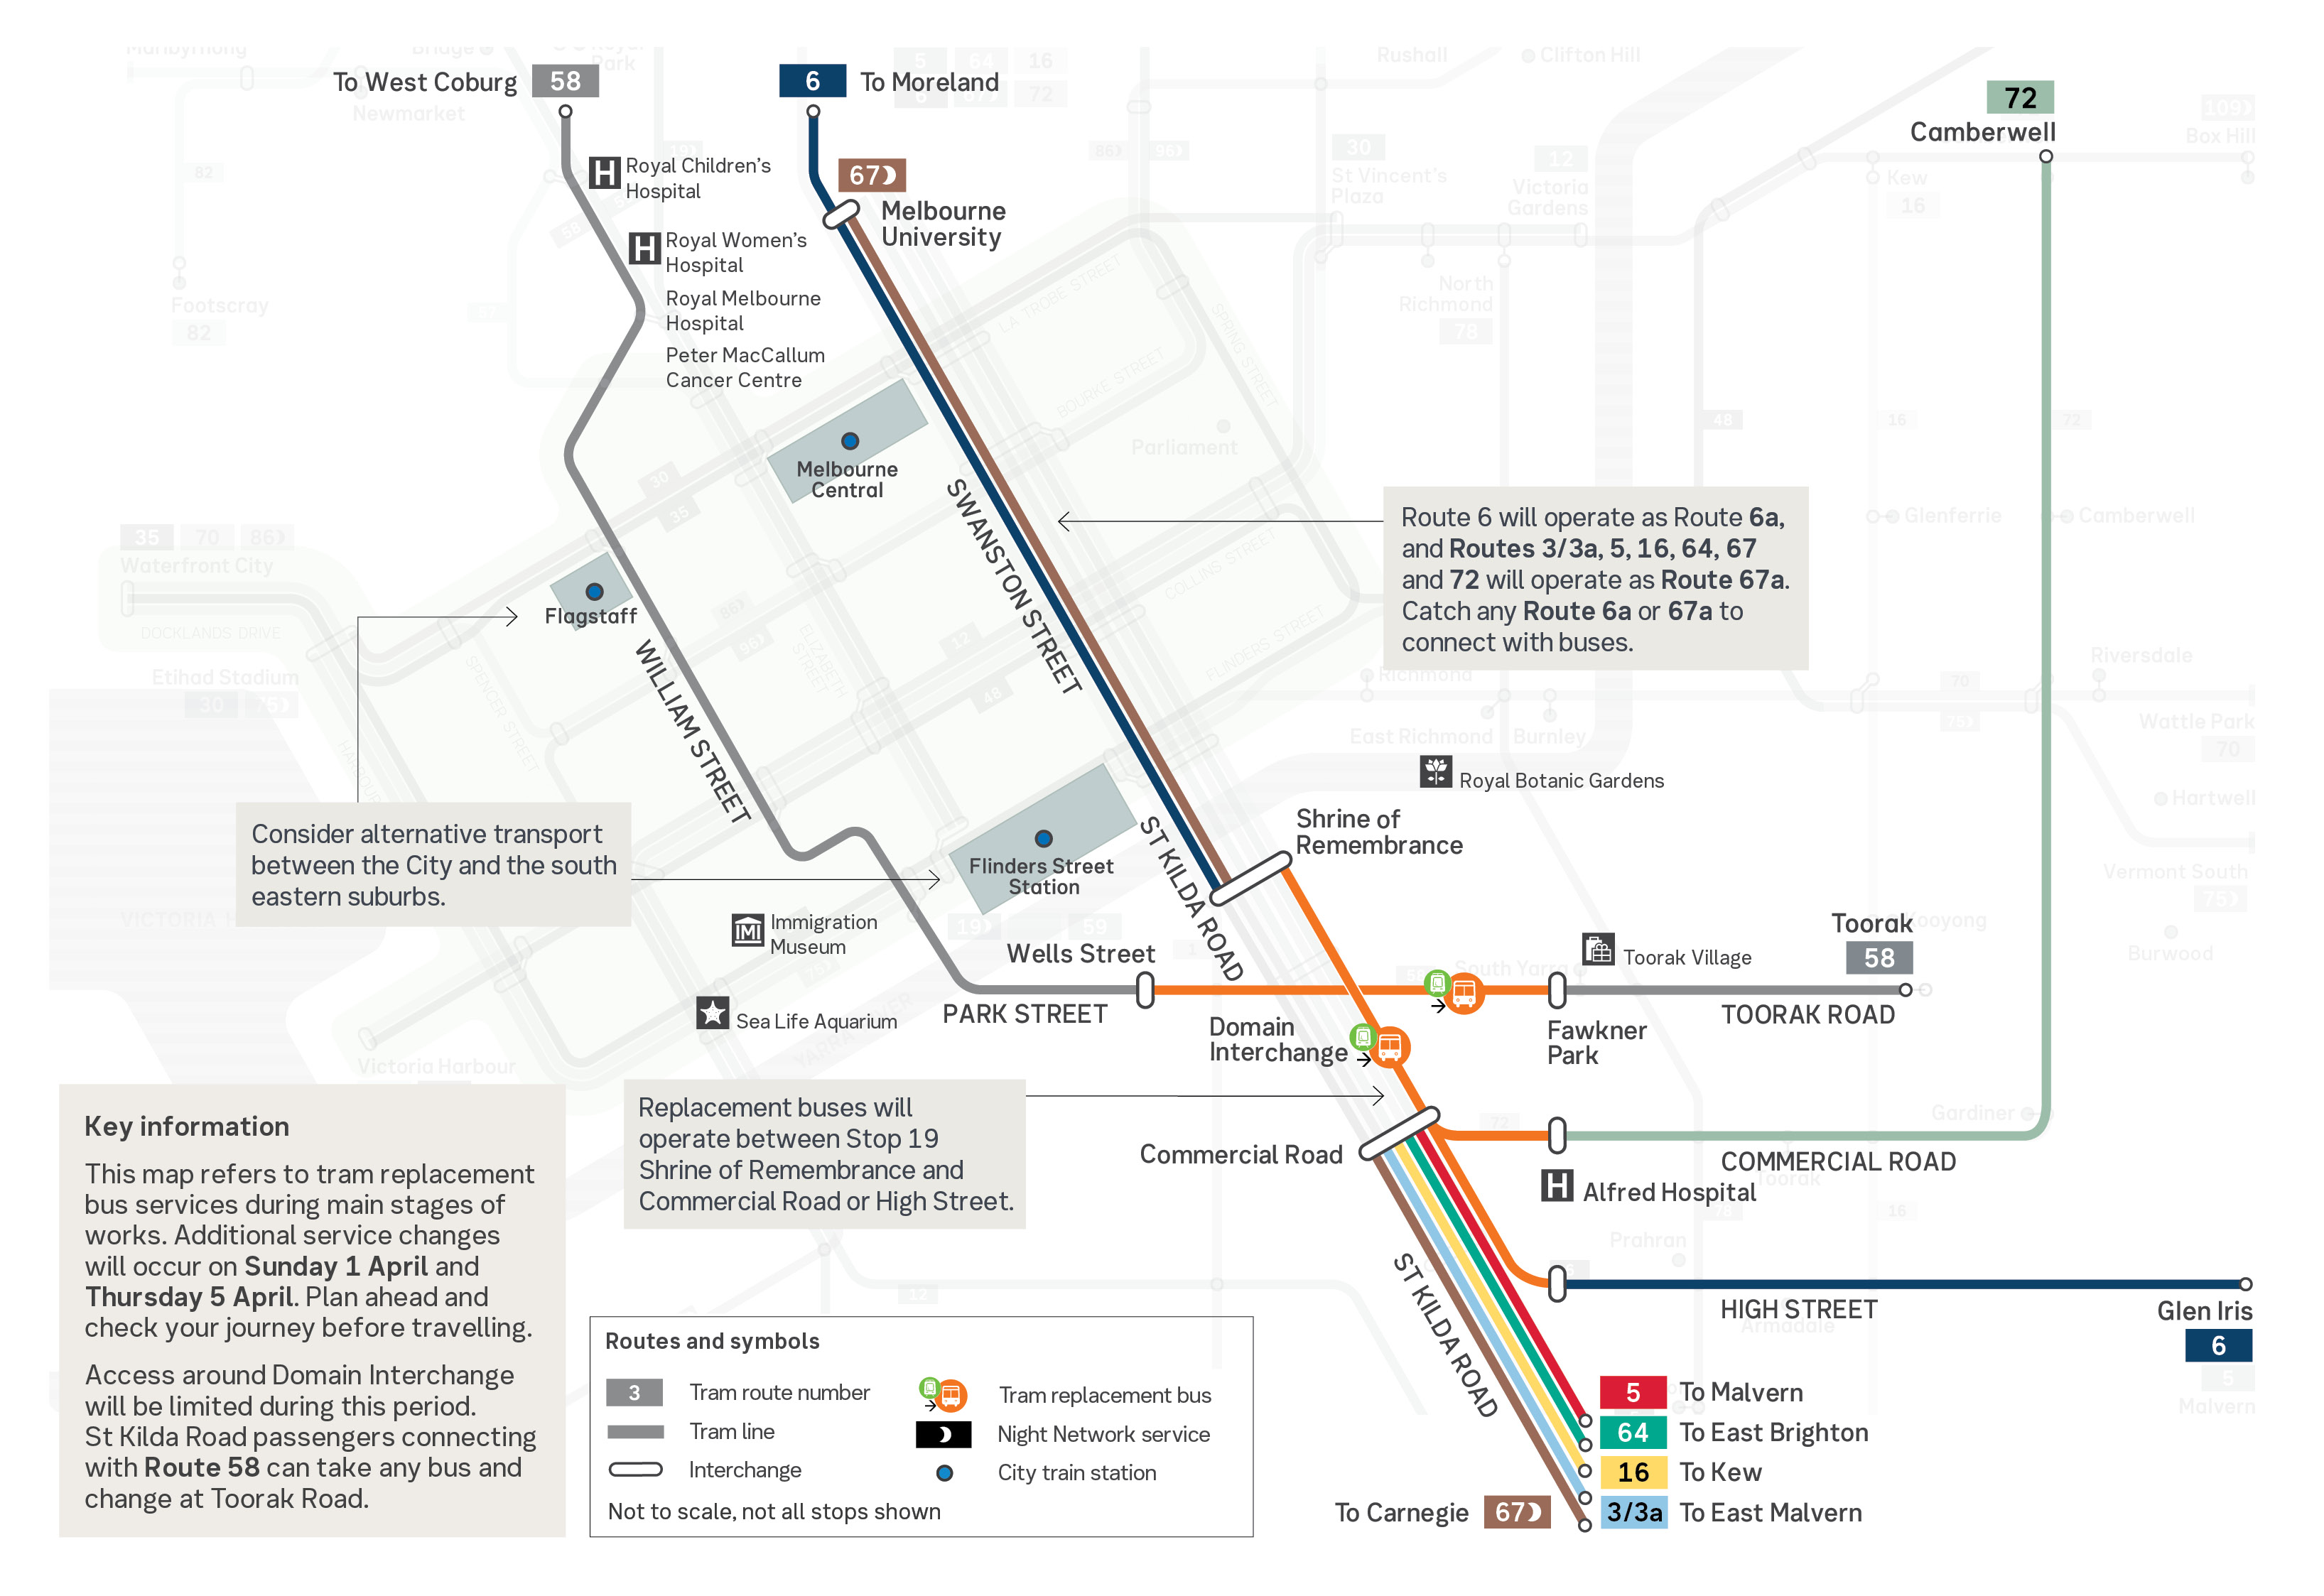 Metro Tunnel Works St Kilda Rd Sunday 1 April To Tuesday 17